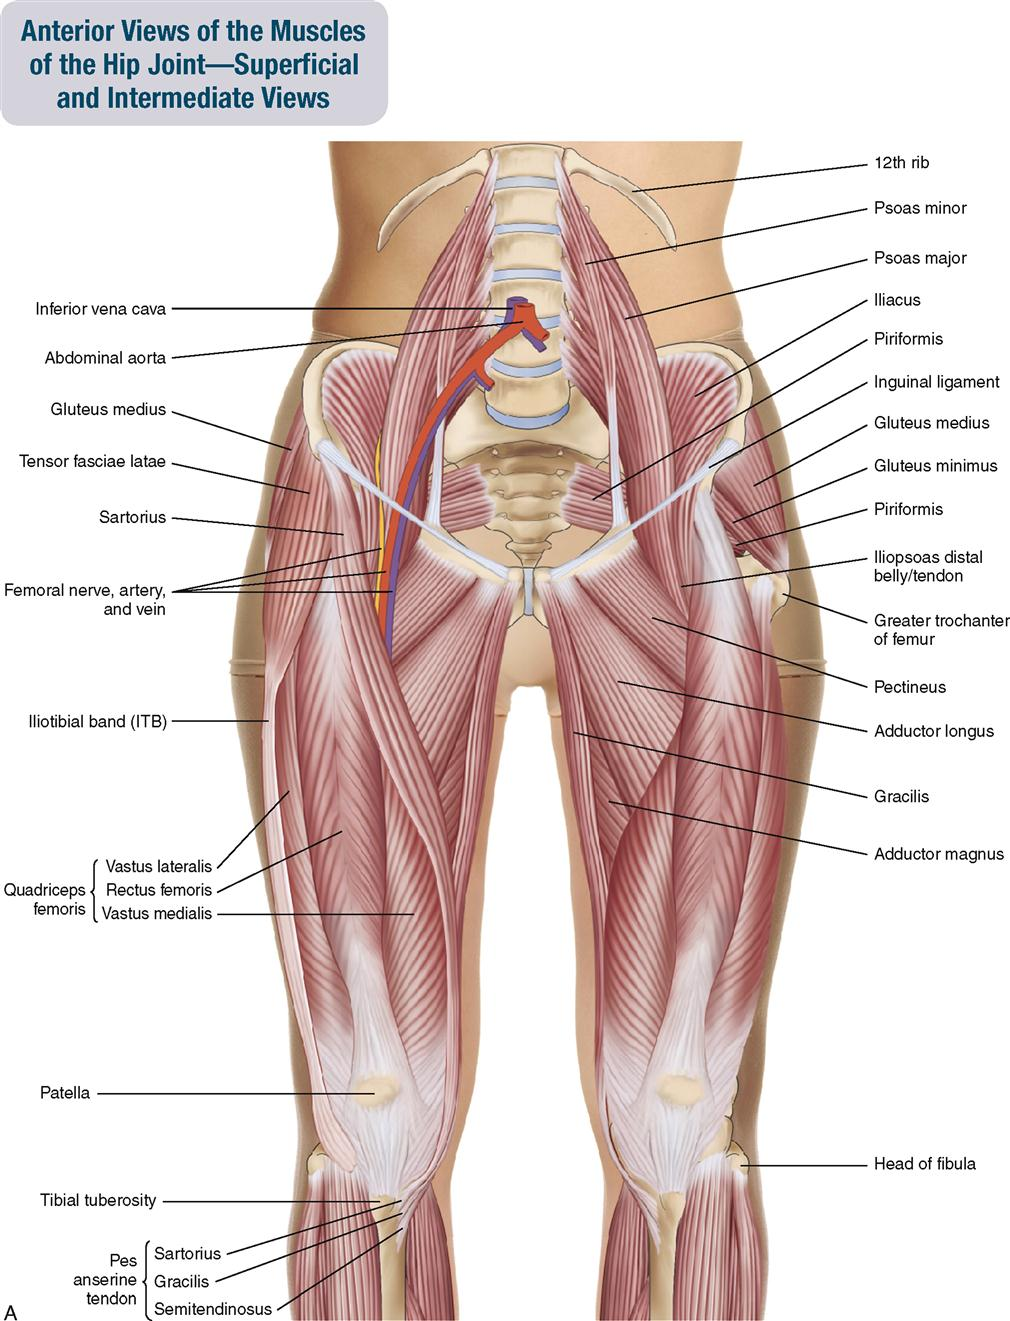 10 Muscles Of The Pelvis And Thigh Musculoskeletal Key